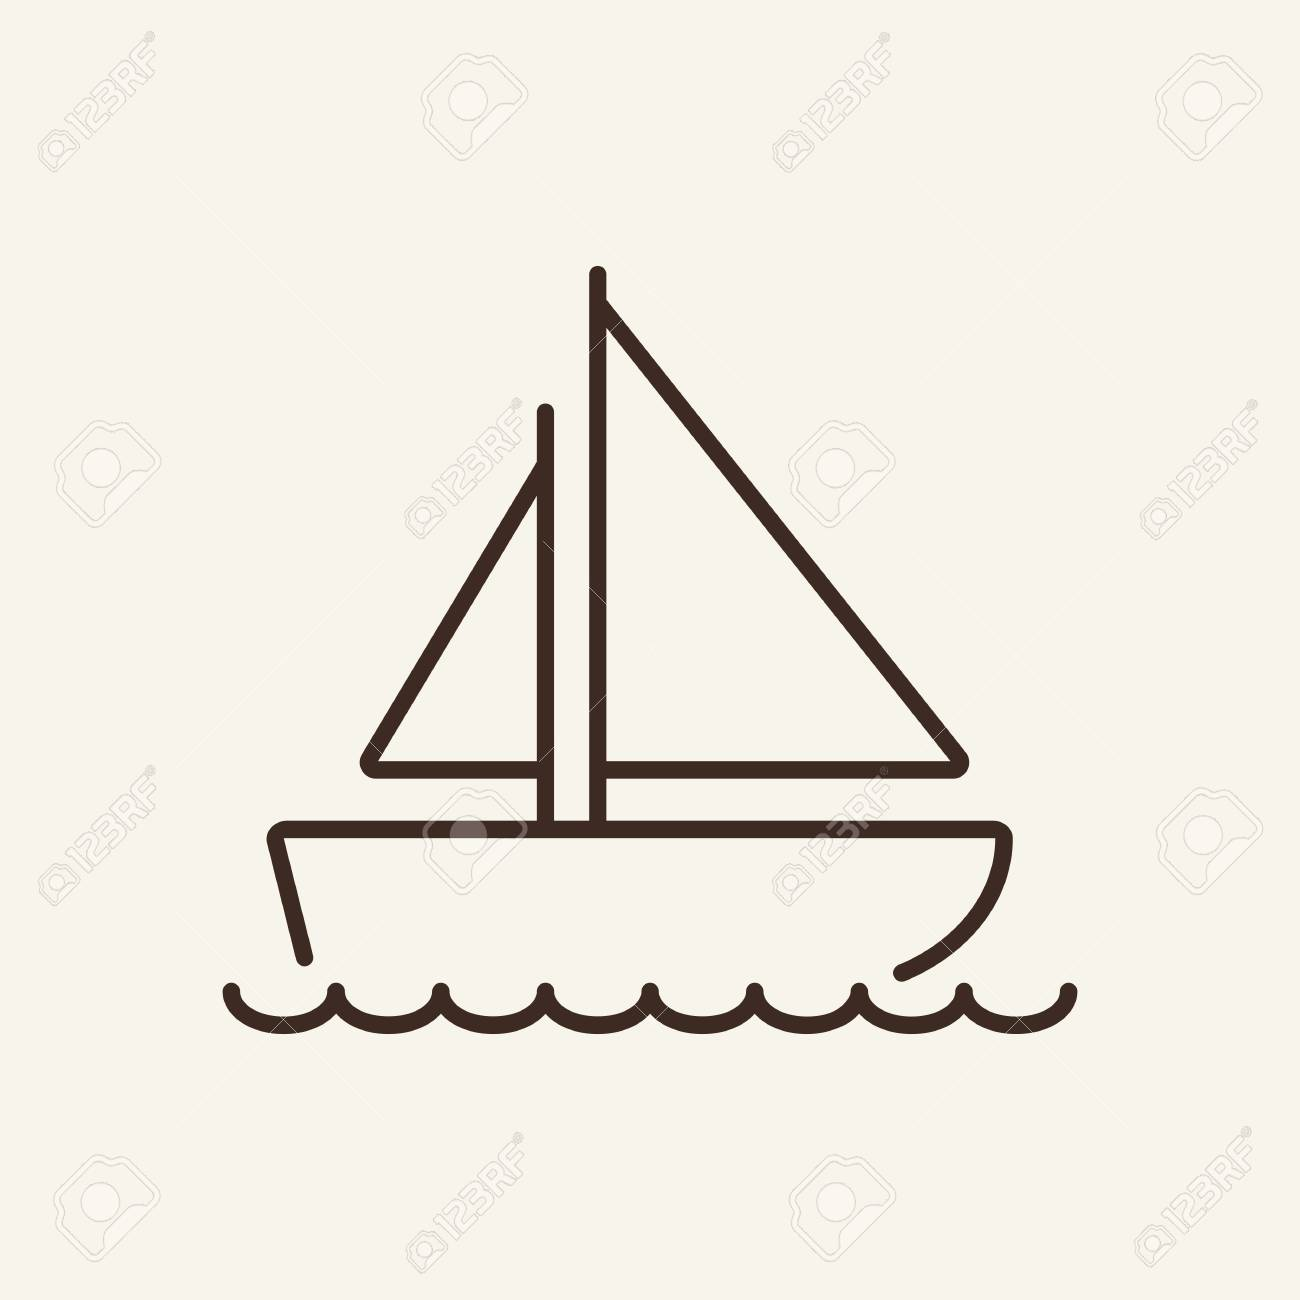 Sail boat line icon  Small boat on white background  Maritime